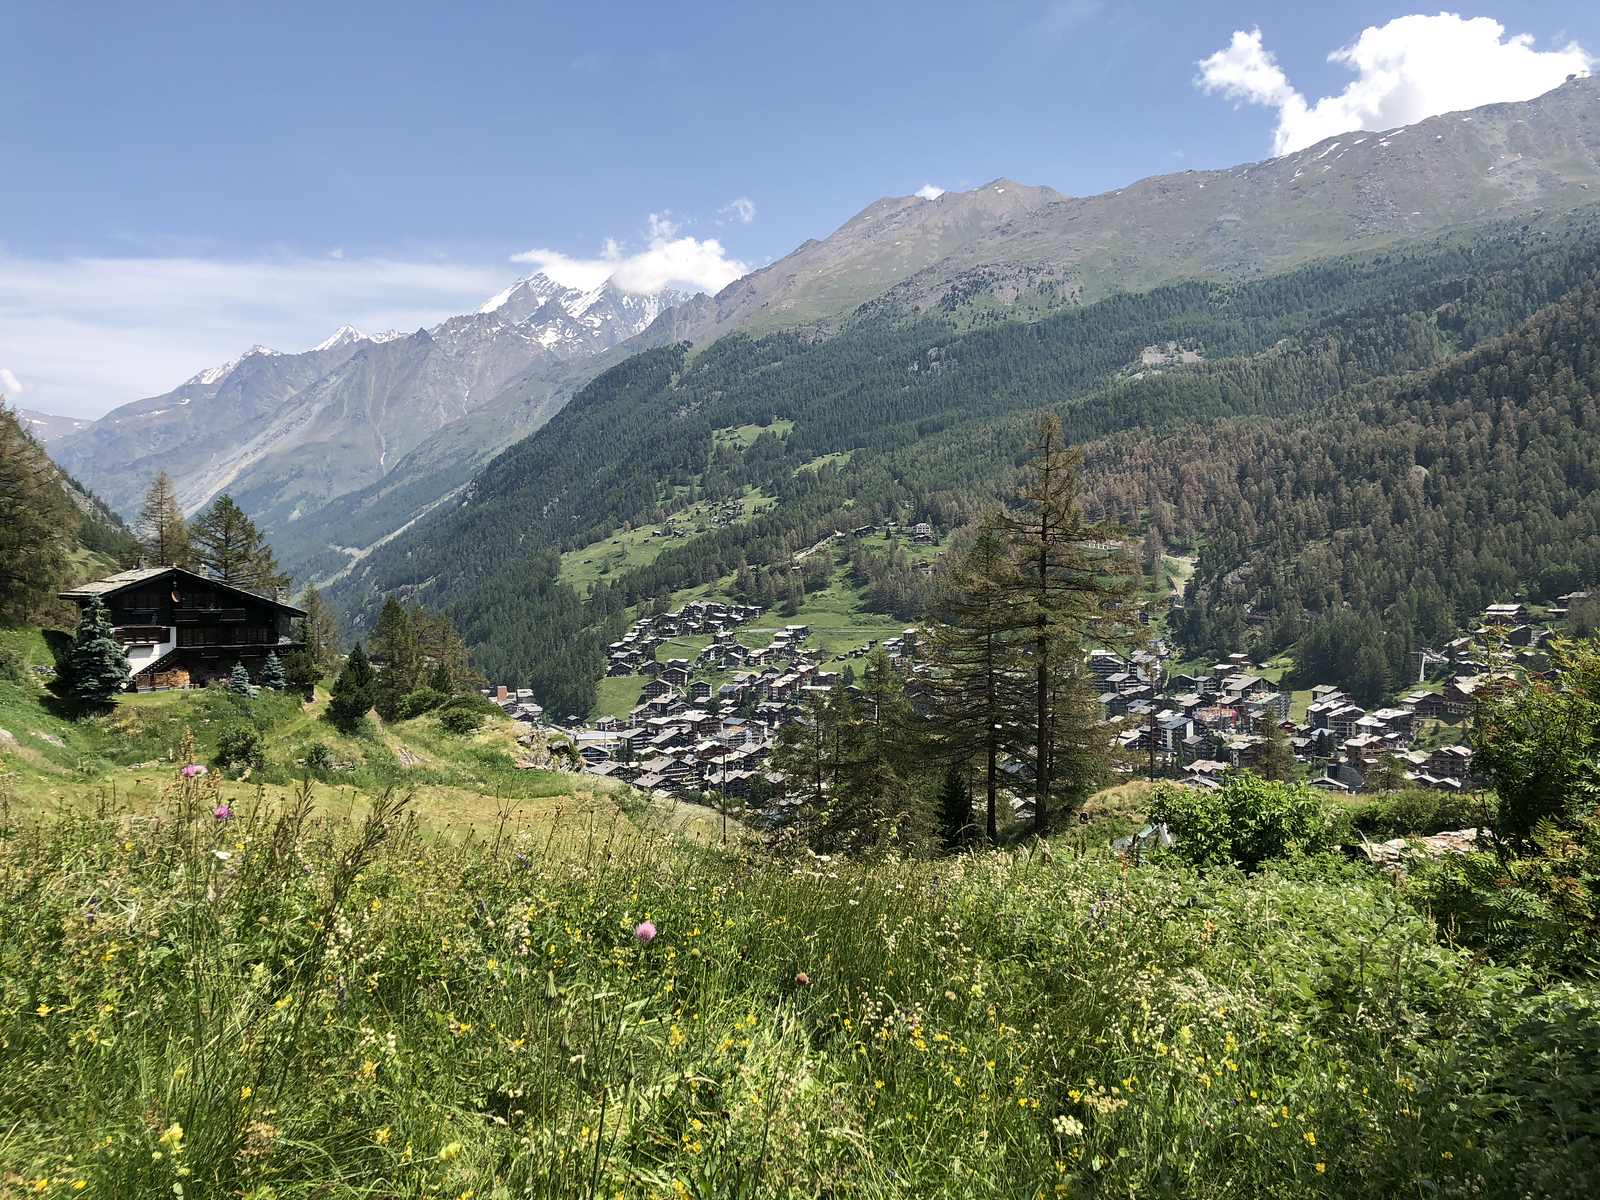 View down to the valley and Zermatt